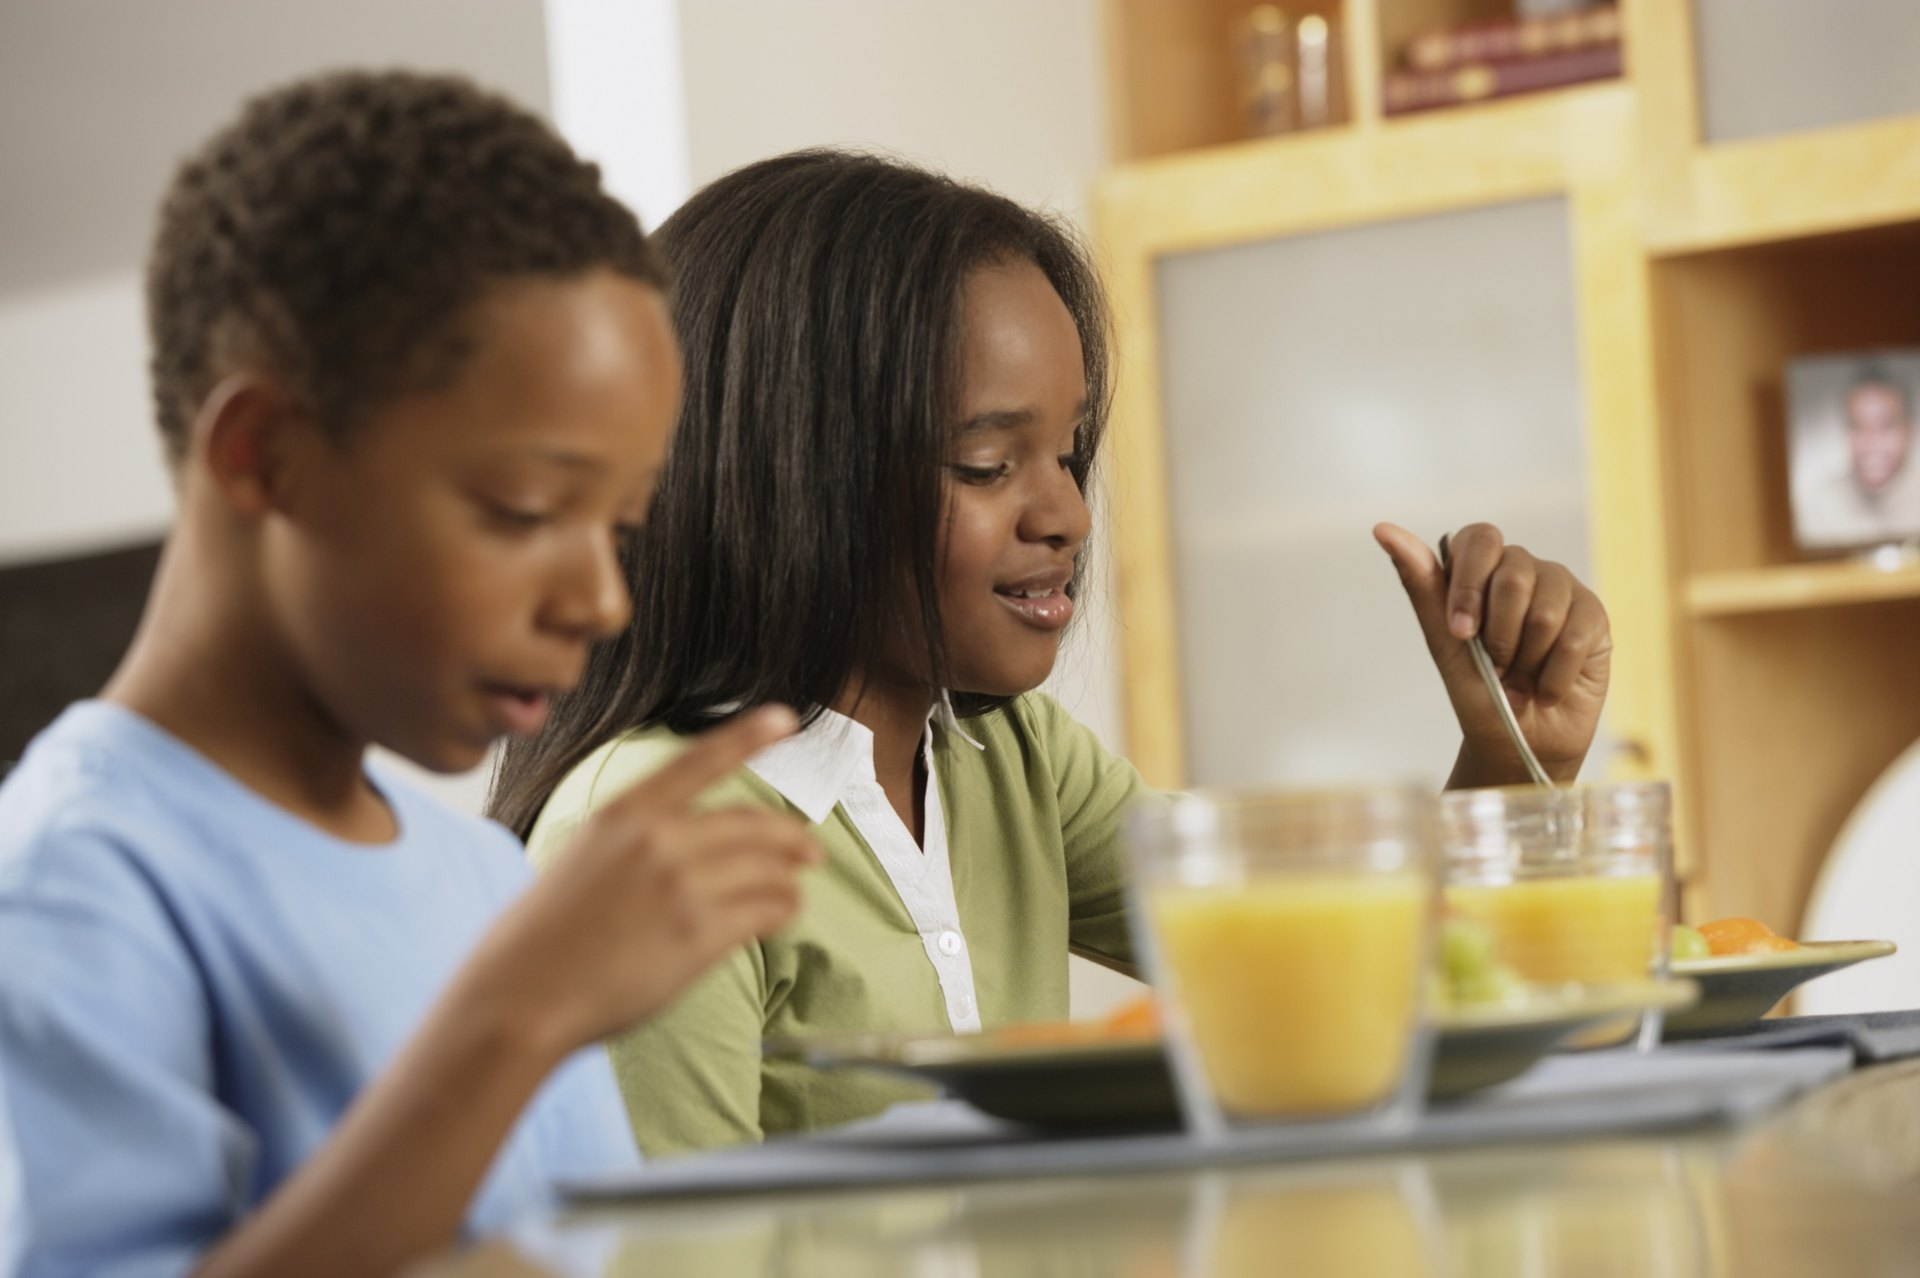 Why Is a Healthy Diet Important for Child Development